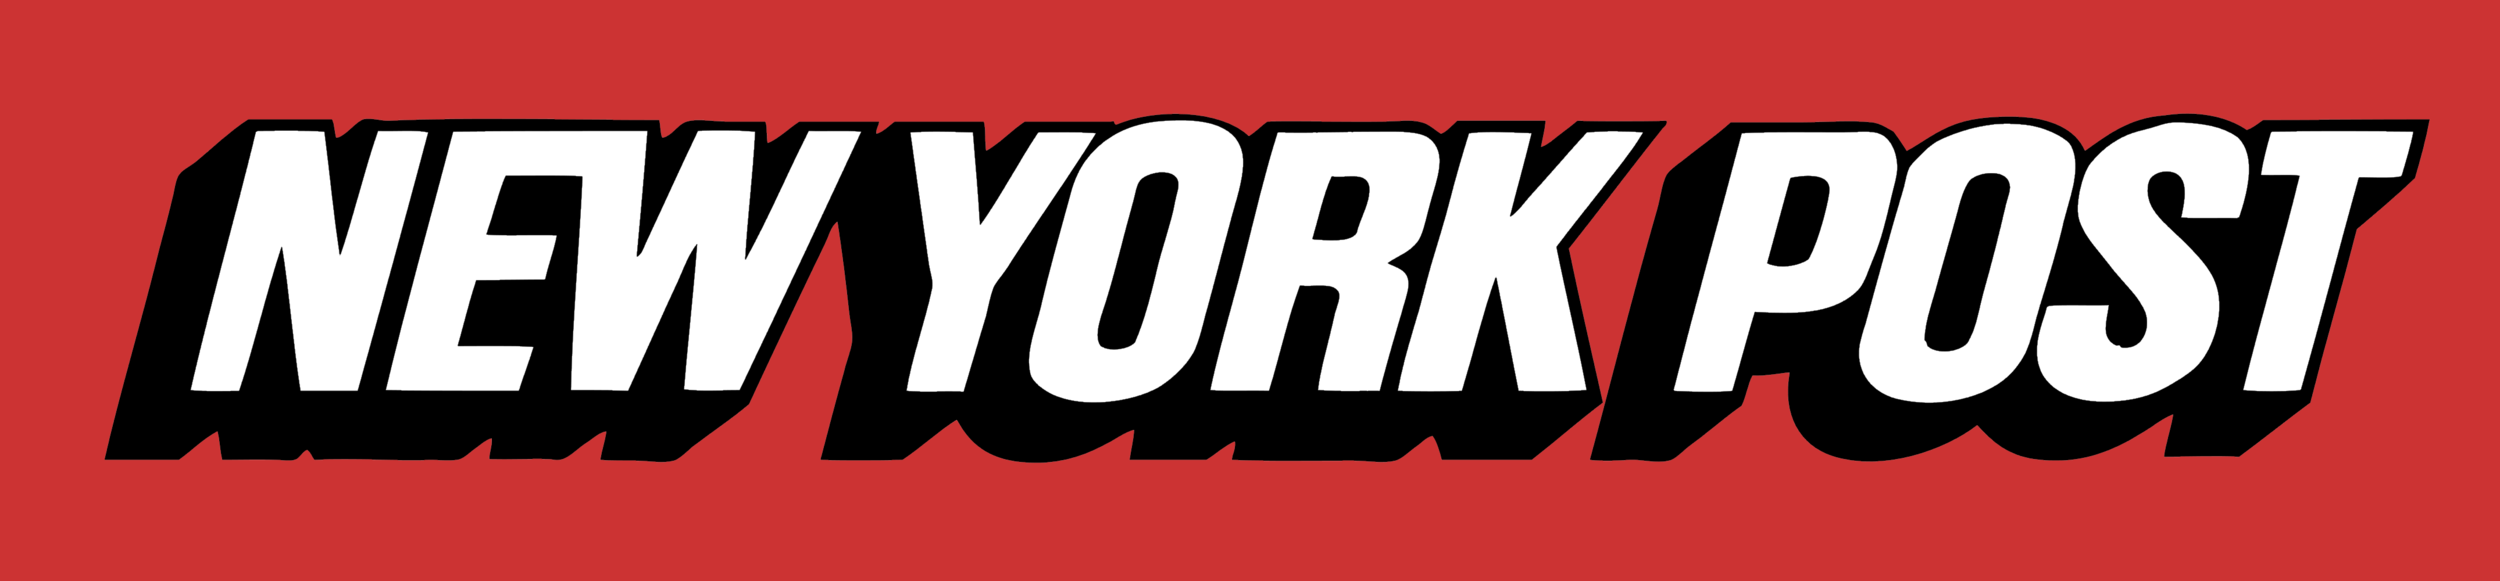 New_York_Post_logo_red.png